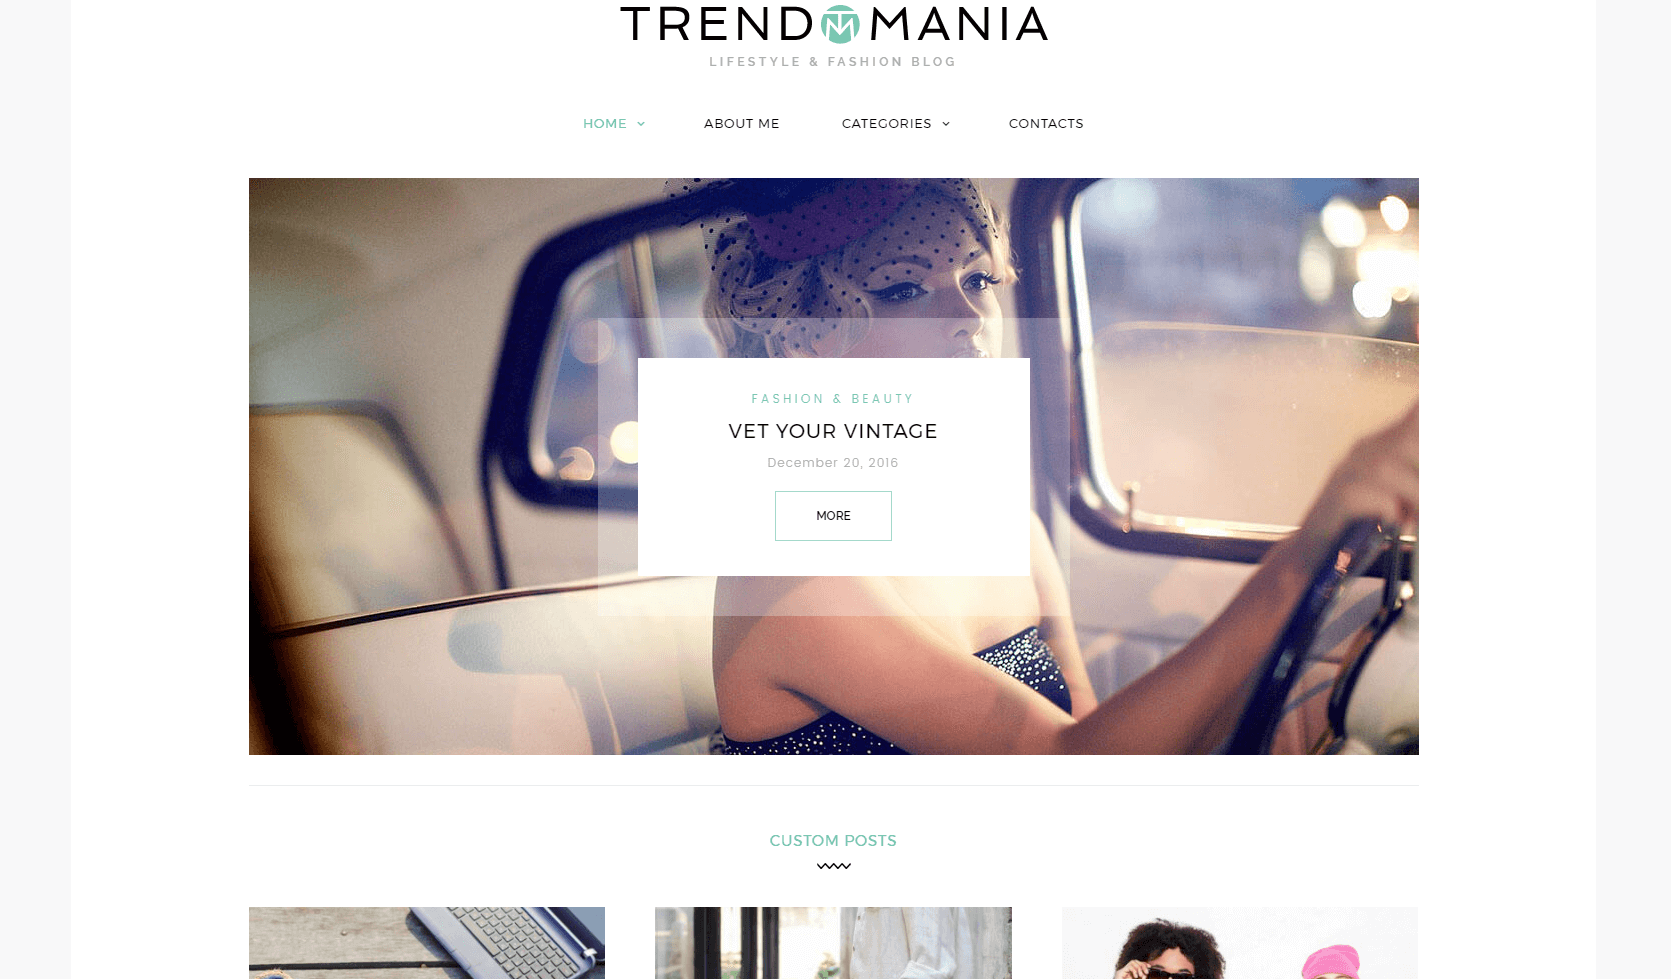 Trendomania - Style and Fashion Blog